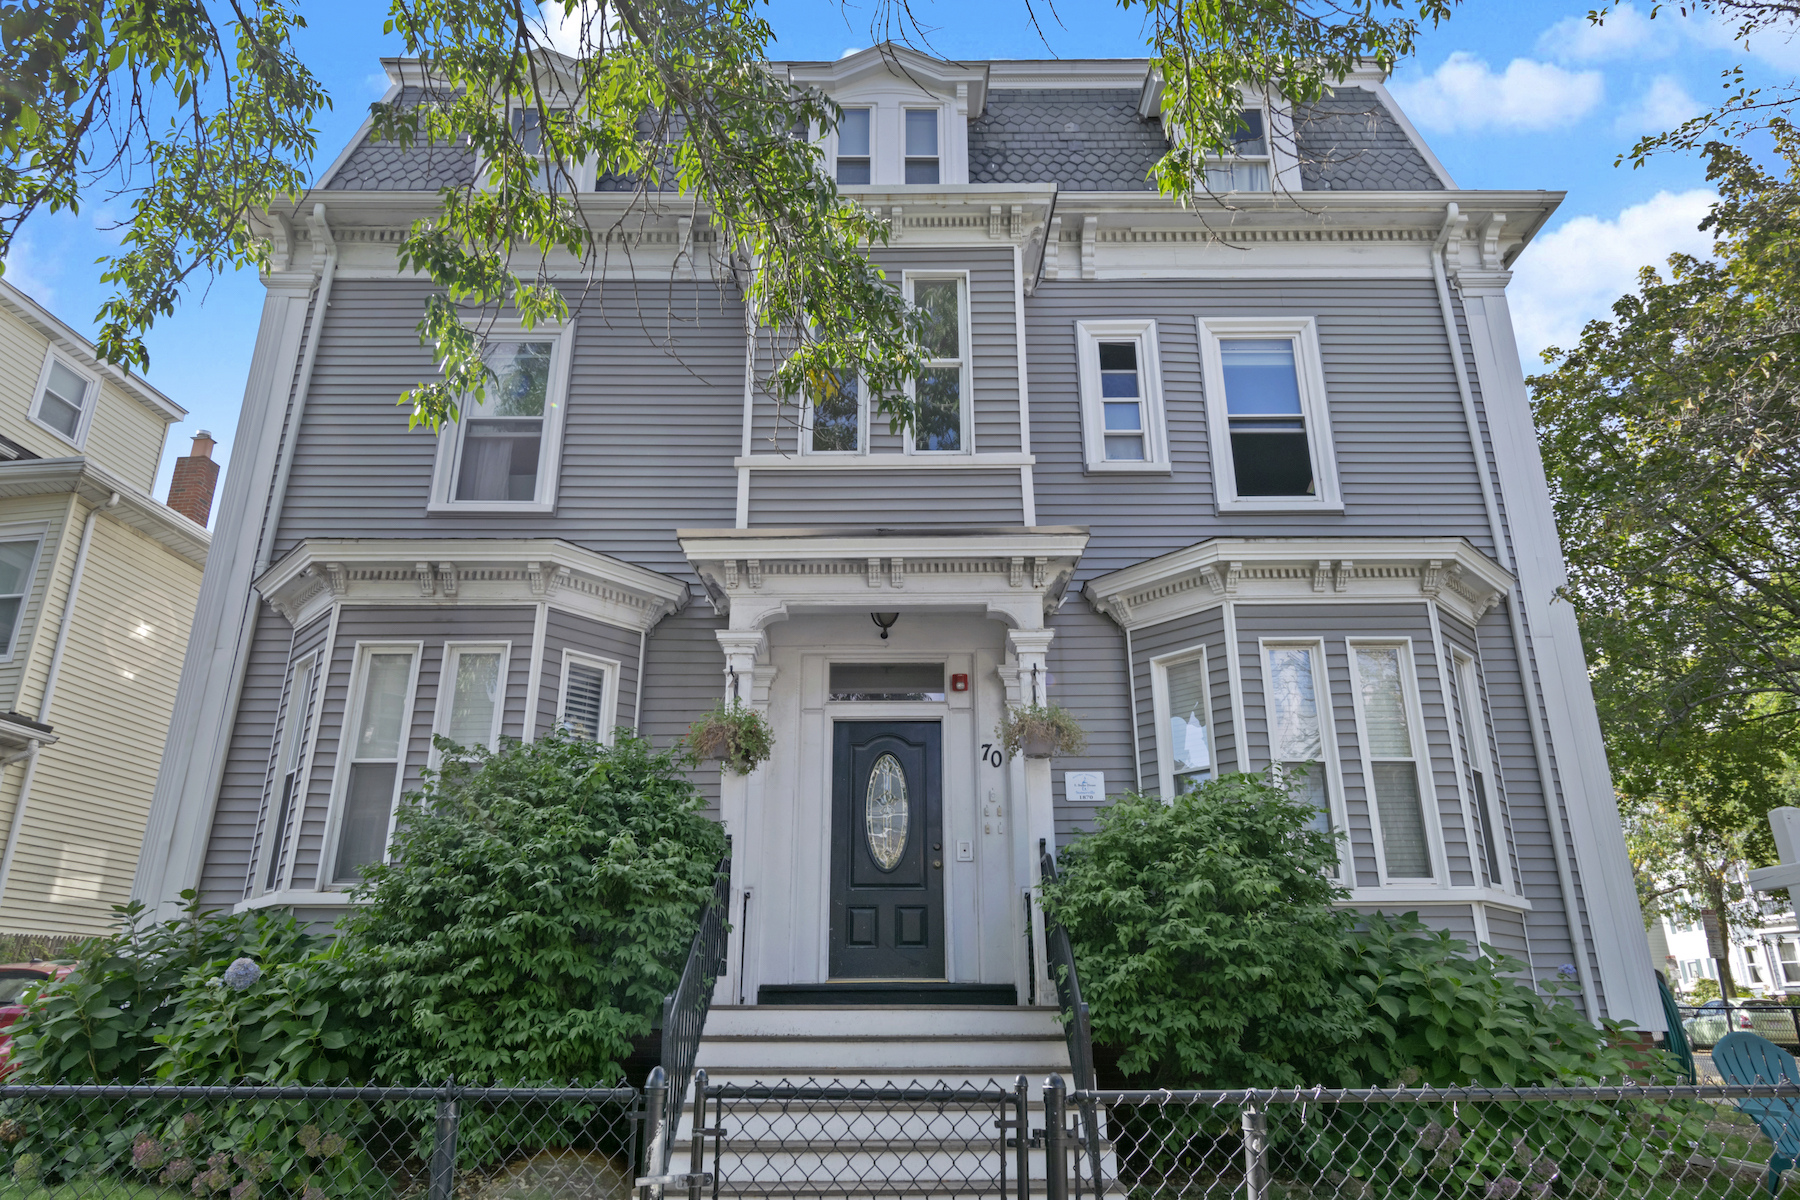 Condominiums for Sale at 70 Pearl Street, Unit 1 70 Pearl St 1 Somerville, Massachusetts 02145 United States